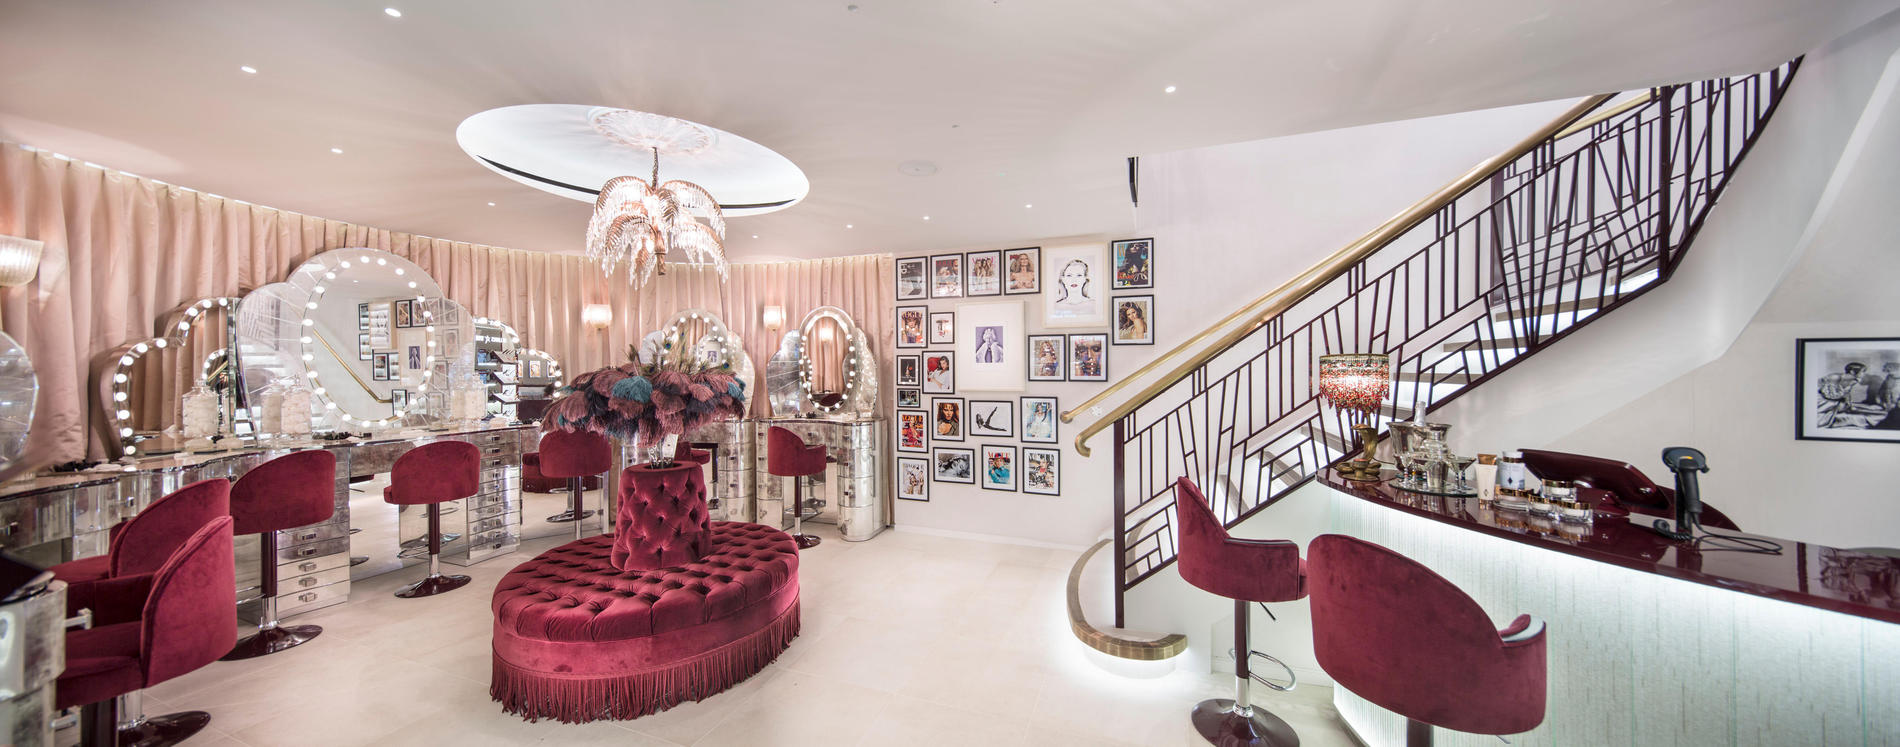 Charlotte Tilbury Covent Garden Makeup Counter In London Greater London